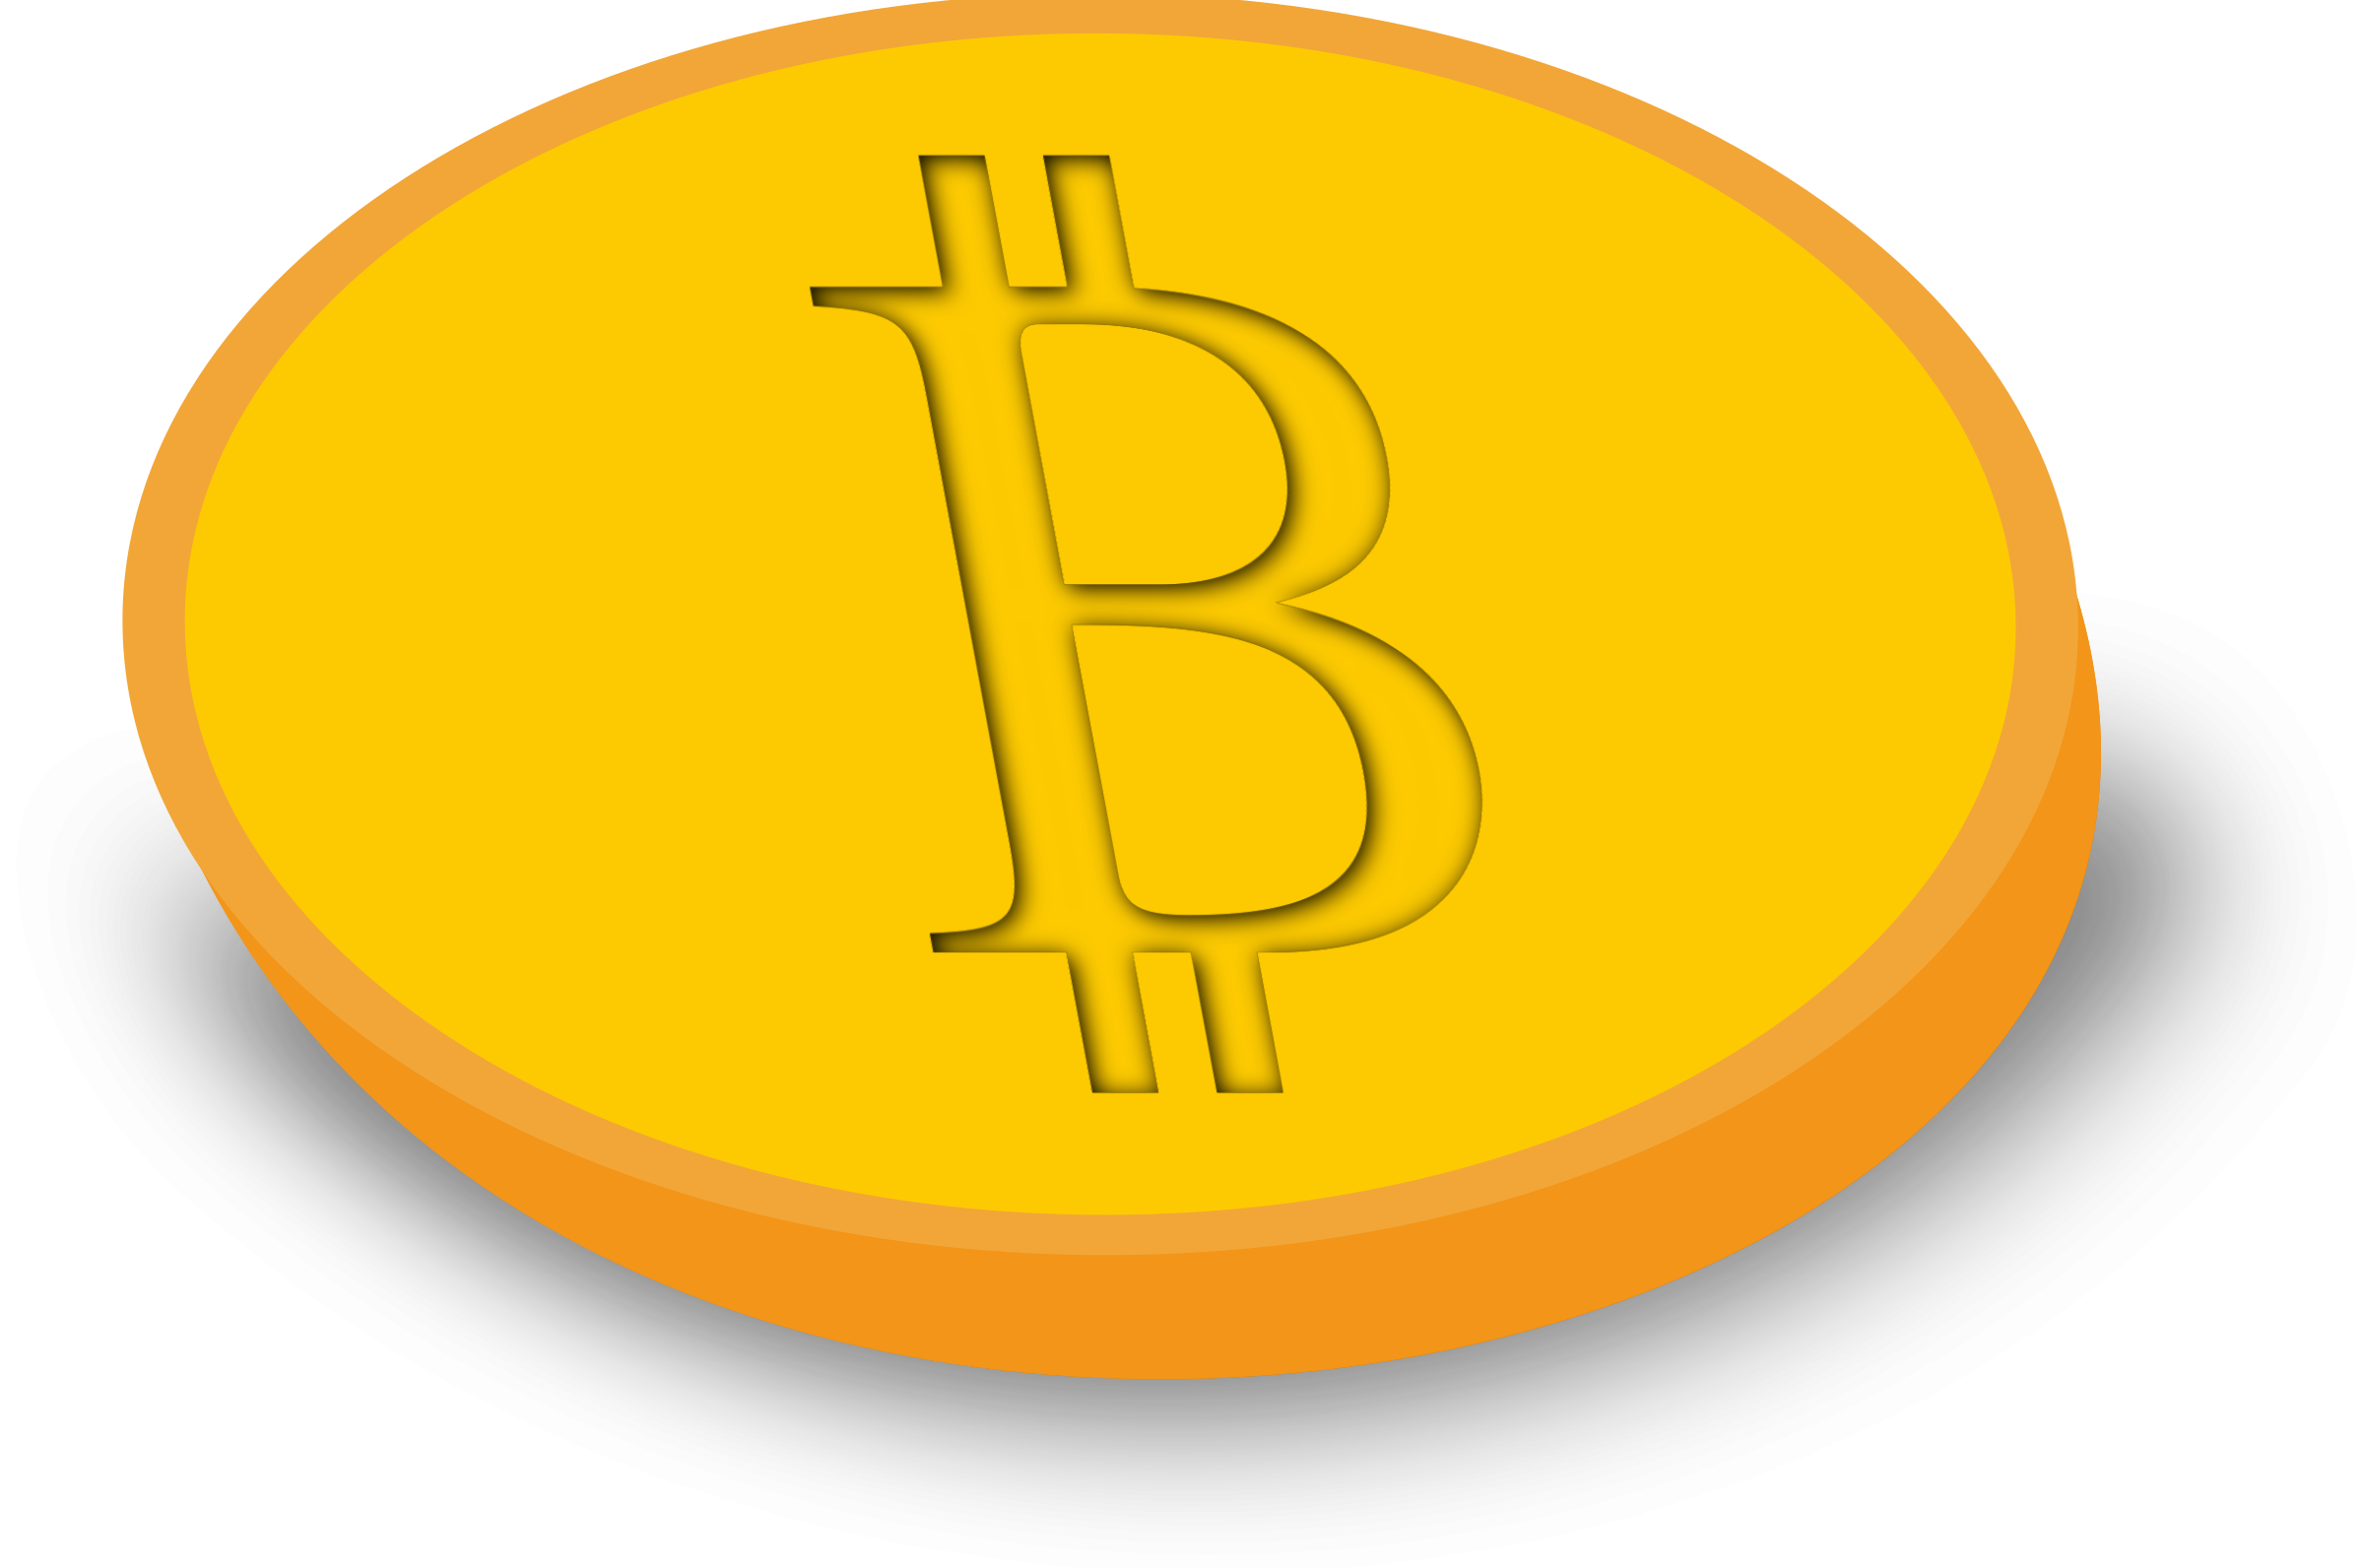 Bitcoin coin by y12